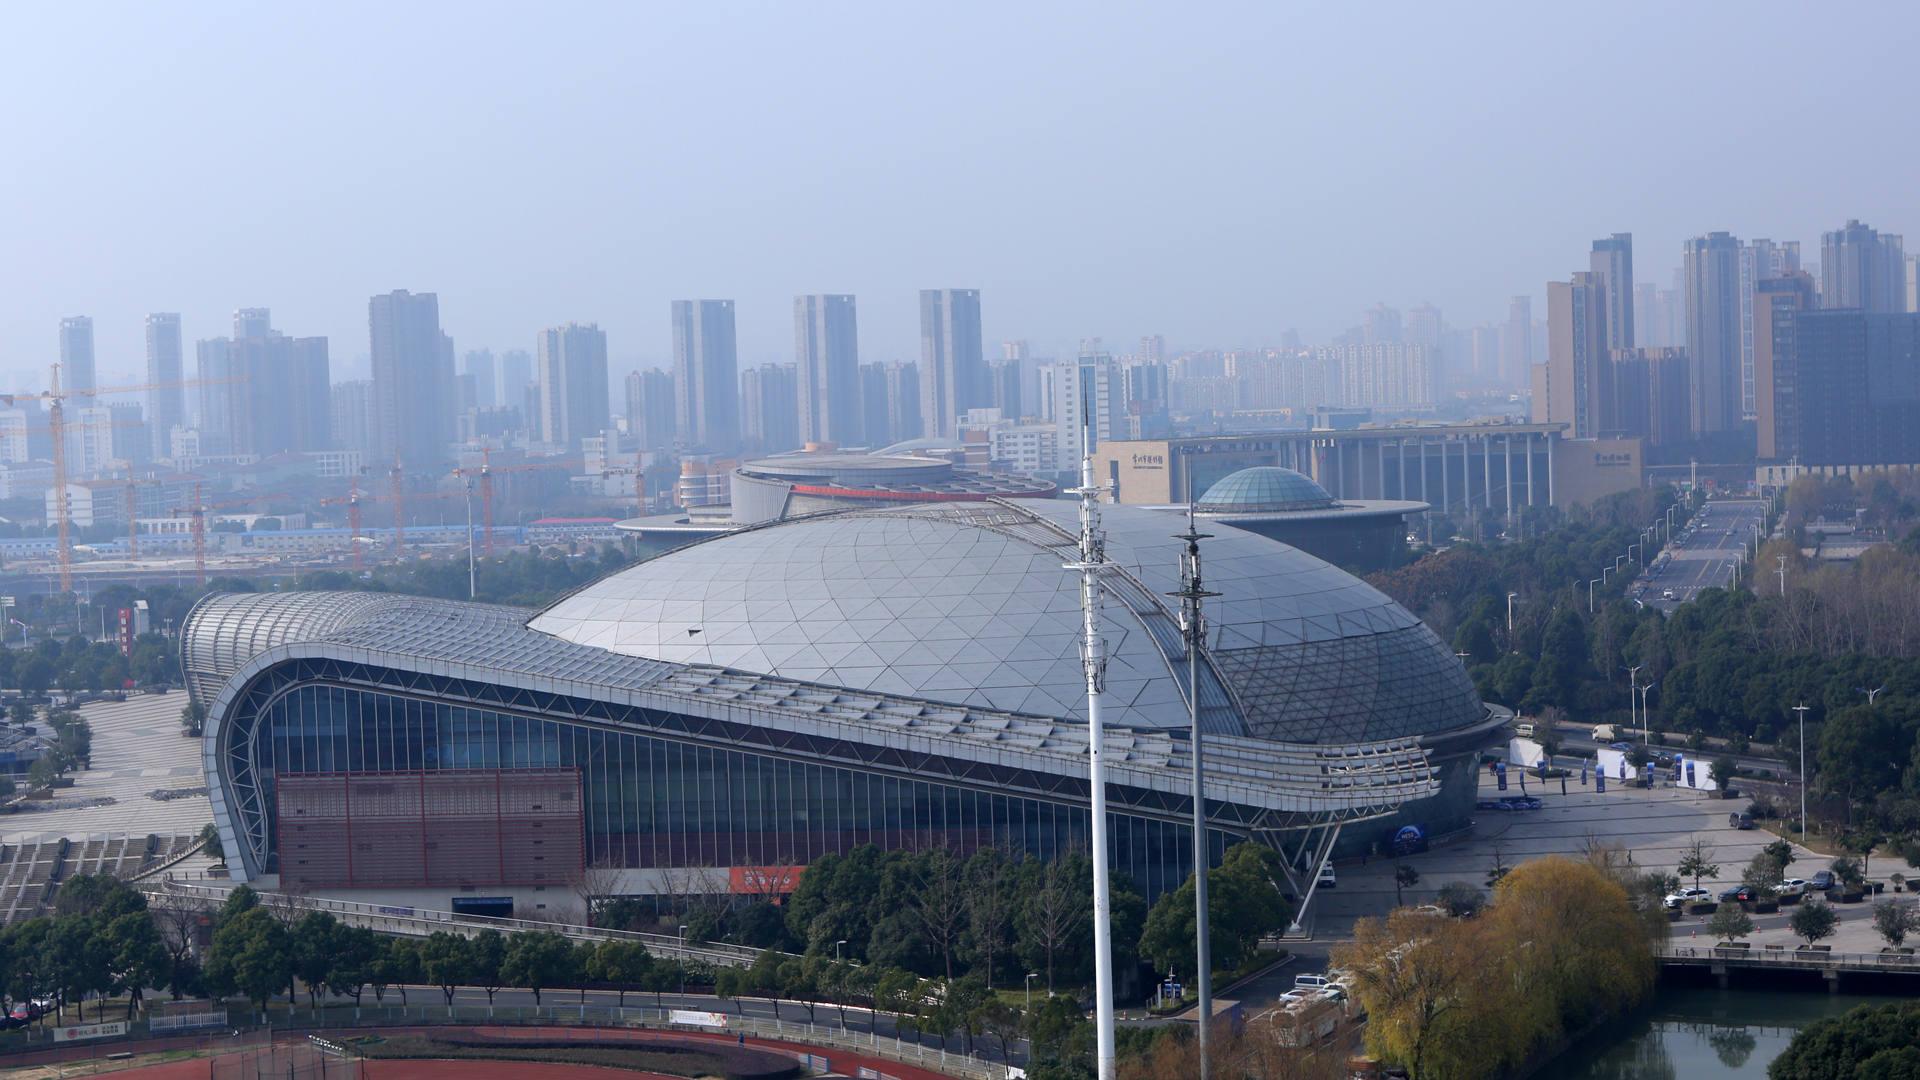 Changzhou Olympic Sports Center WESG 2016